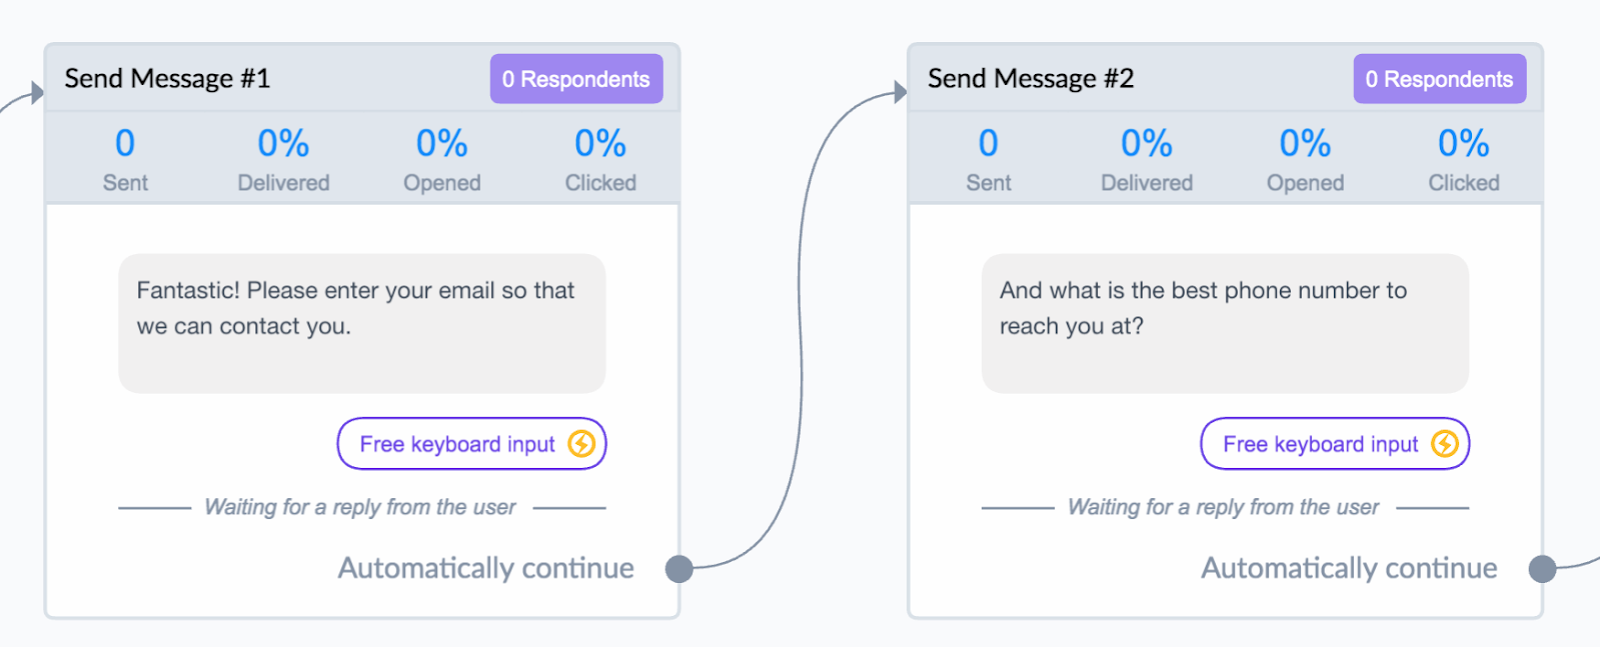 Collecting Lead Information Flow in ManyChat